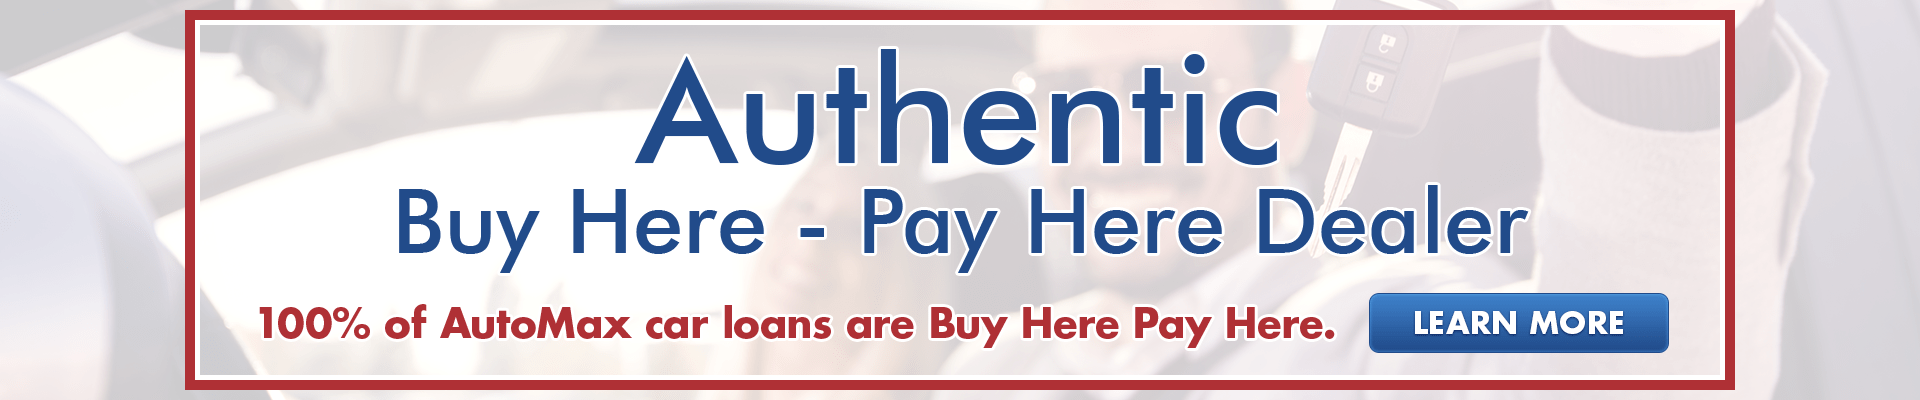 Authentic Buy Here - Pay Here Dealer